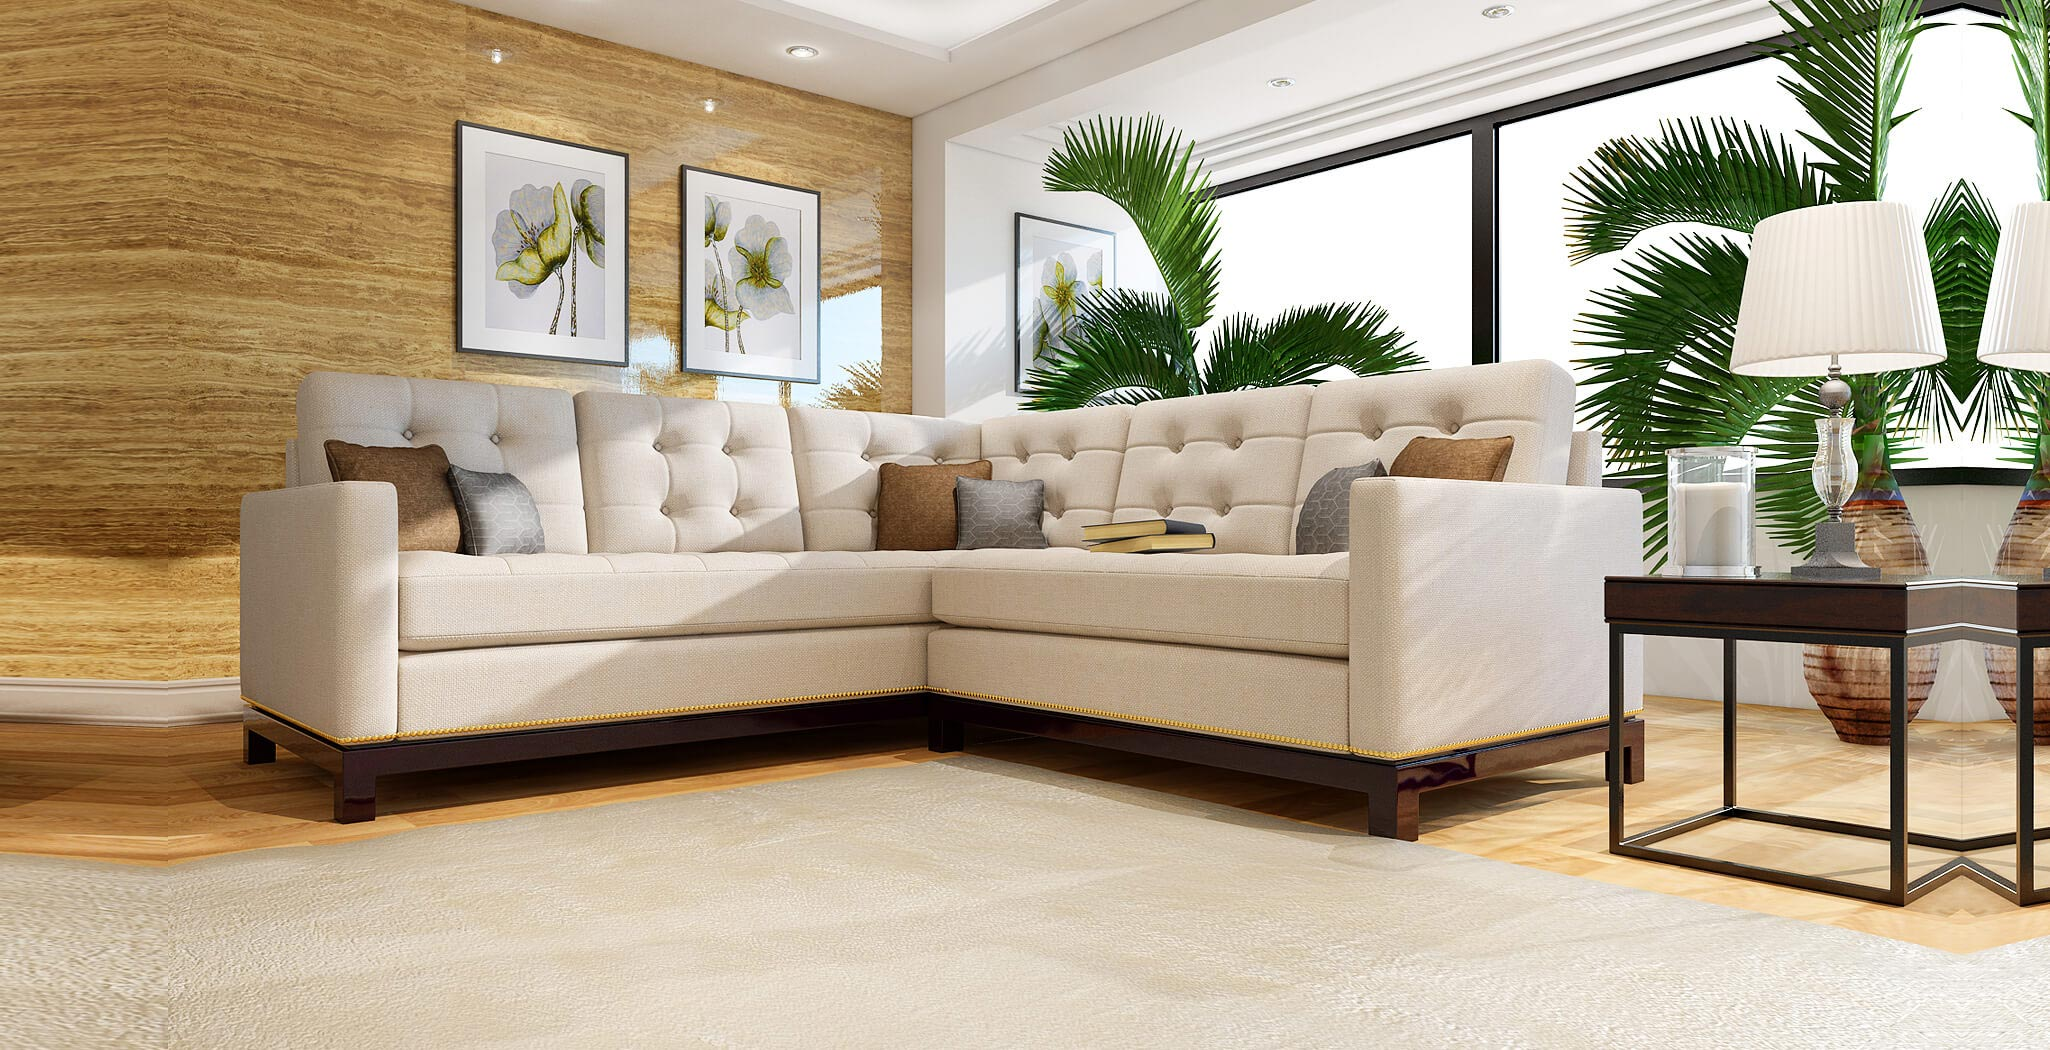 davos sectional furniture gallery 1